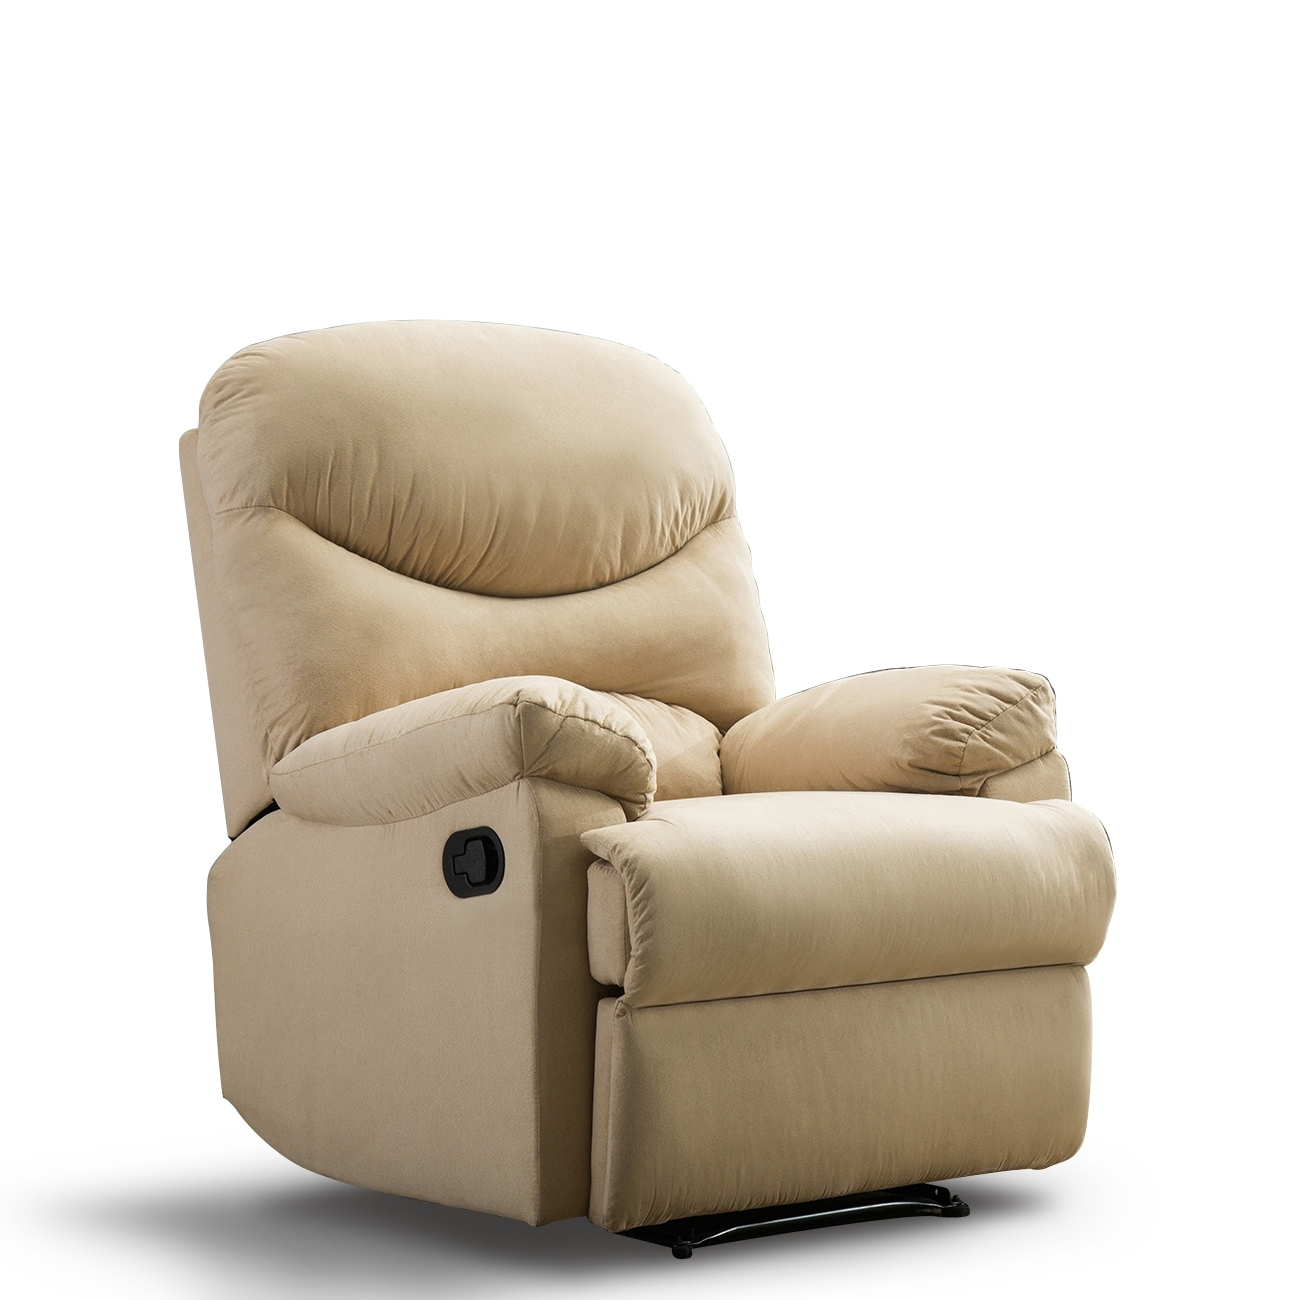 Belleze microfiber recliner sofa chair home office reclining positions ergonomic armrests footrests brown beige